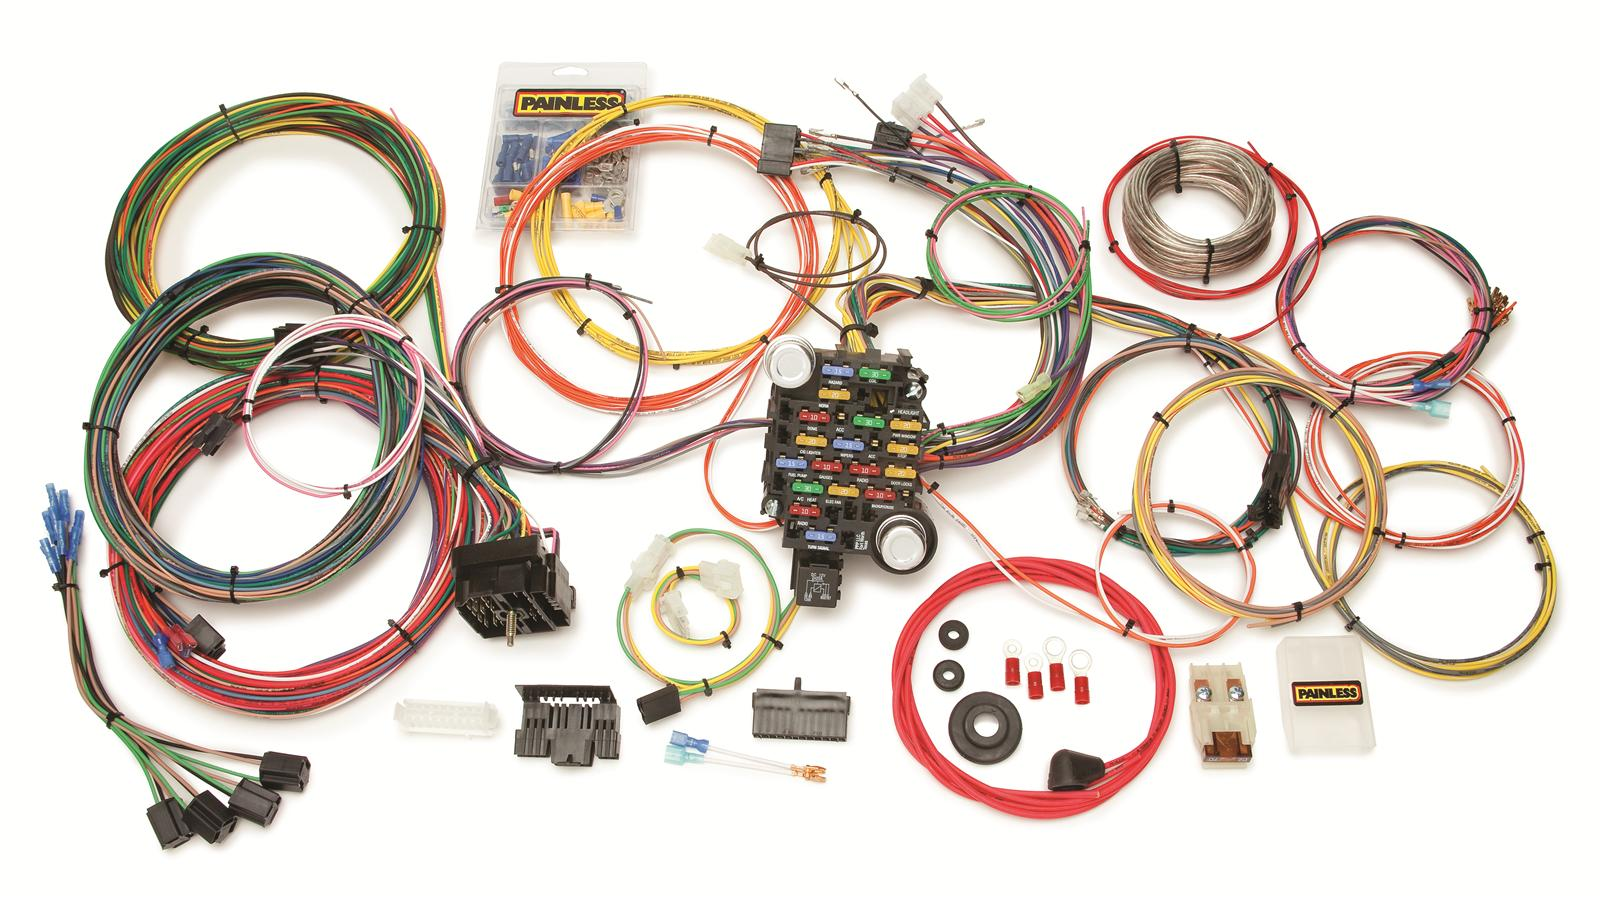 prf 10205_xl painless performance gmc chevy truck harnesses 10205 free gm truck wiring harness at metegol.co